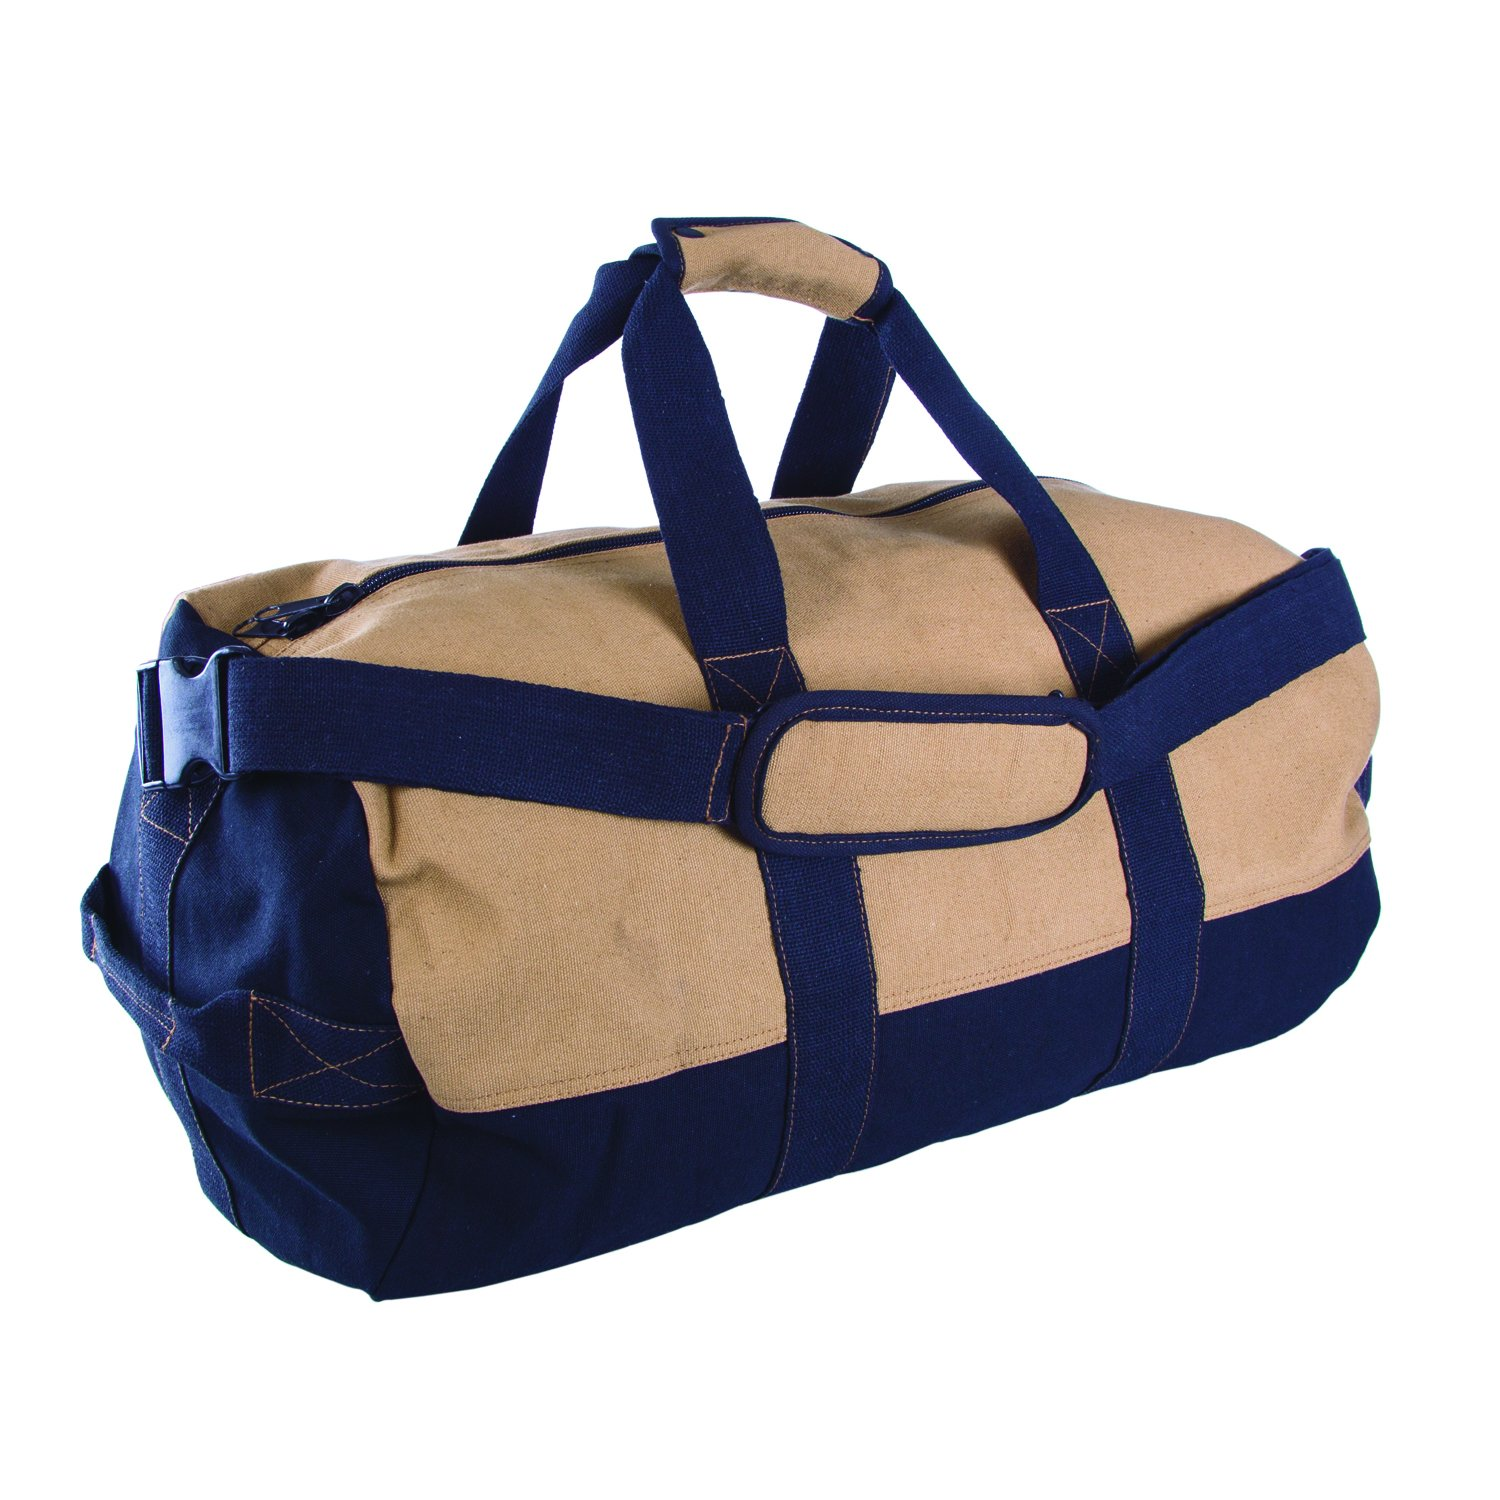 Stansport Two-Tone Canvas Duffle Bag with Zipper, 14 x 24-Inch